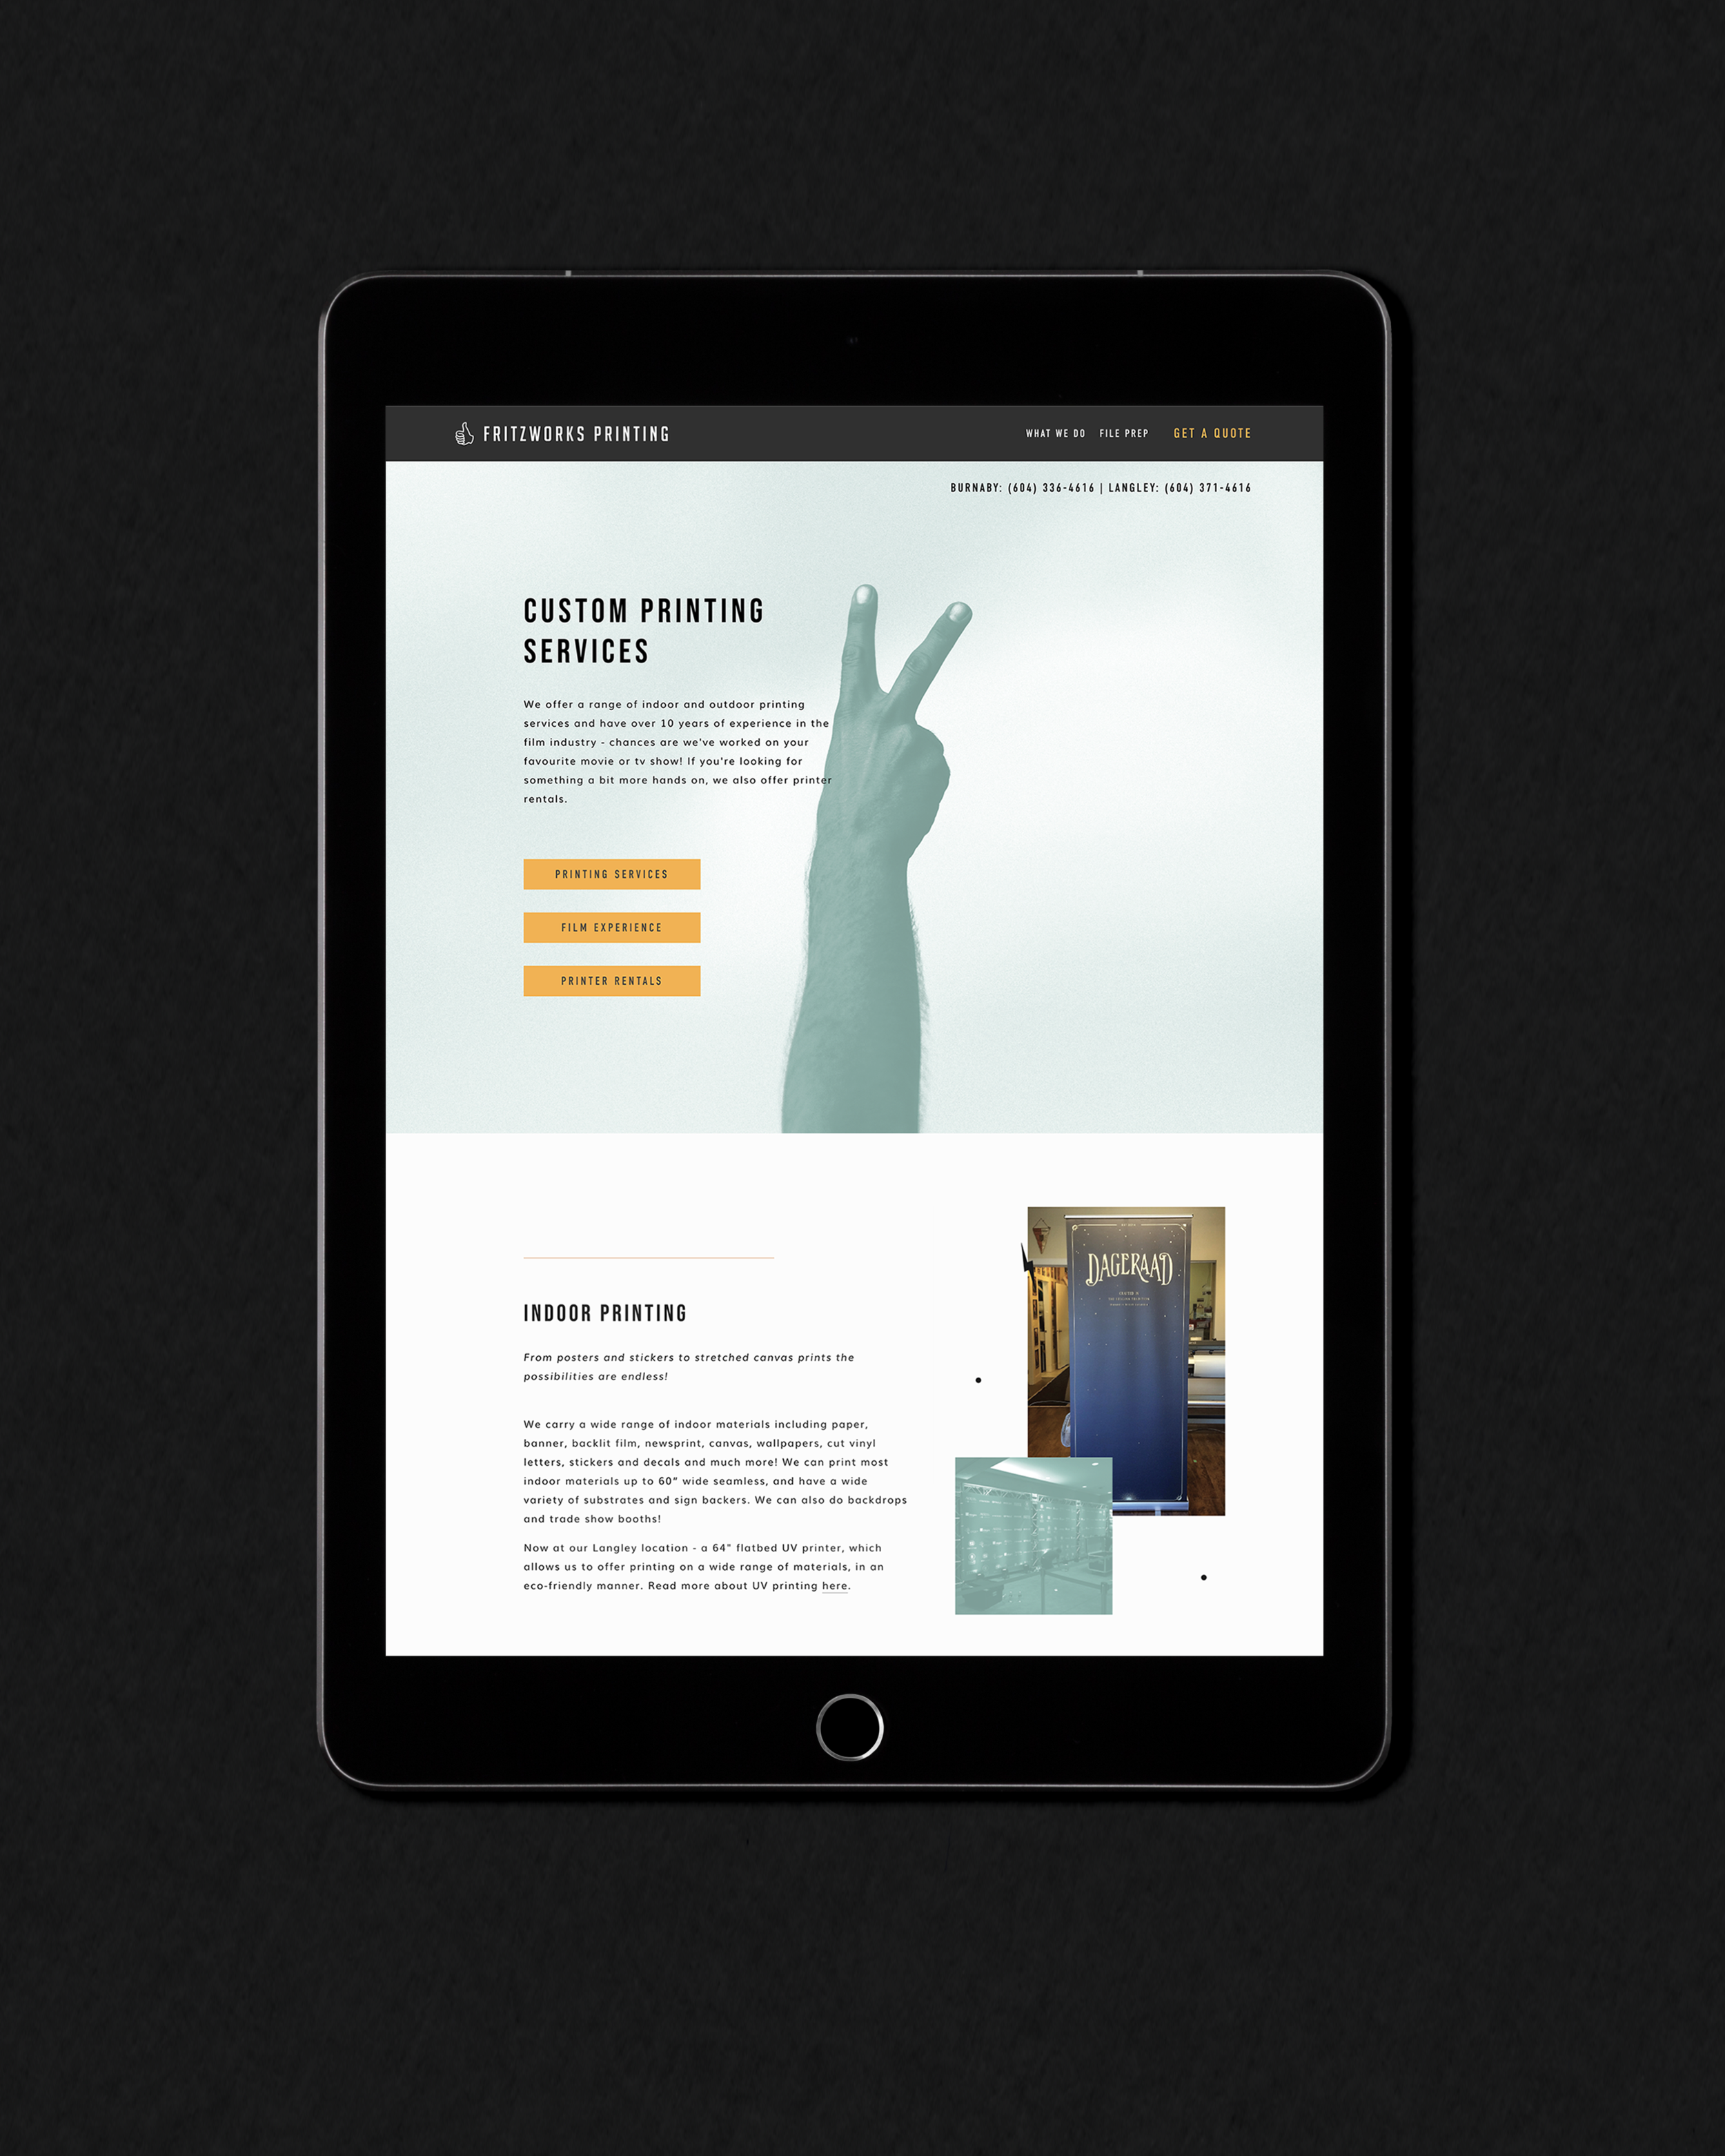 Custom Printing web page of Fritzworks Printing shown on a black iPad, designed by Salt Design Co.